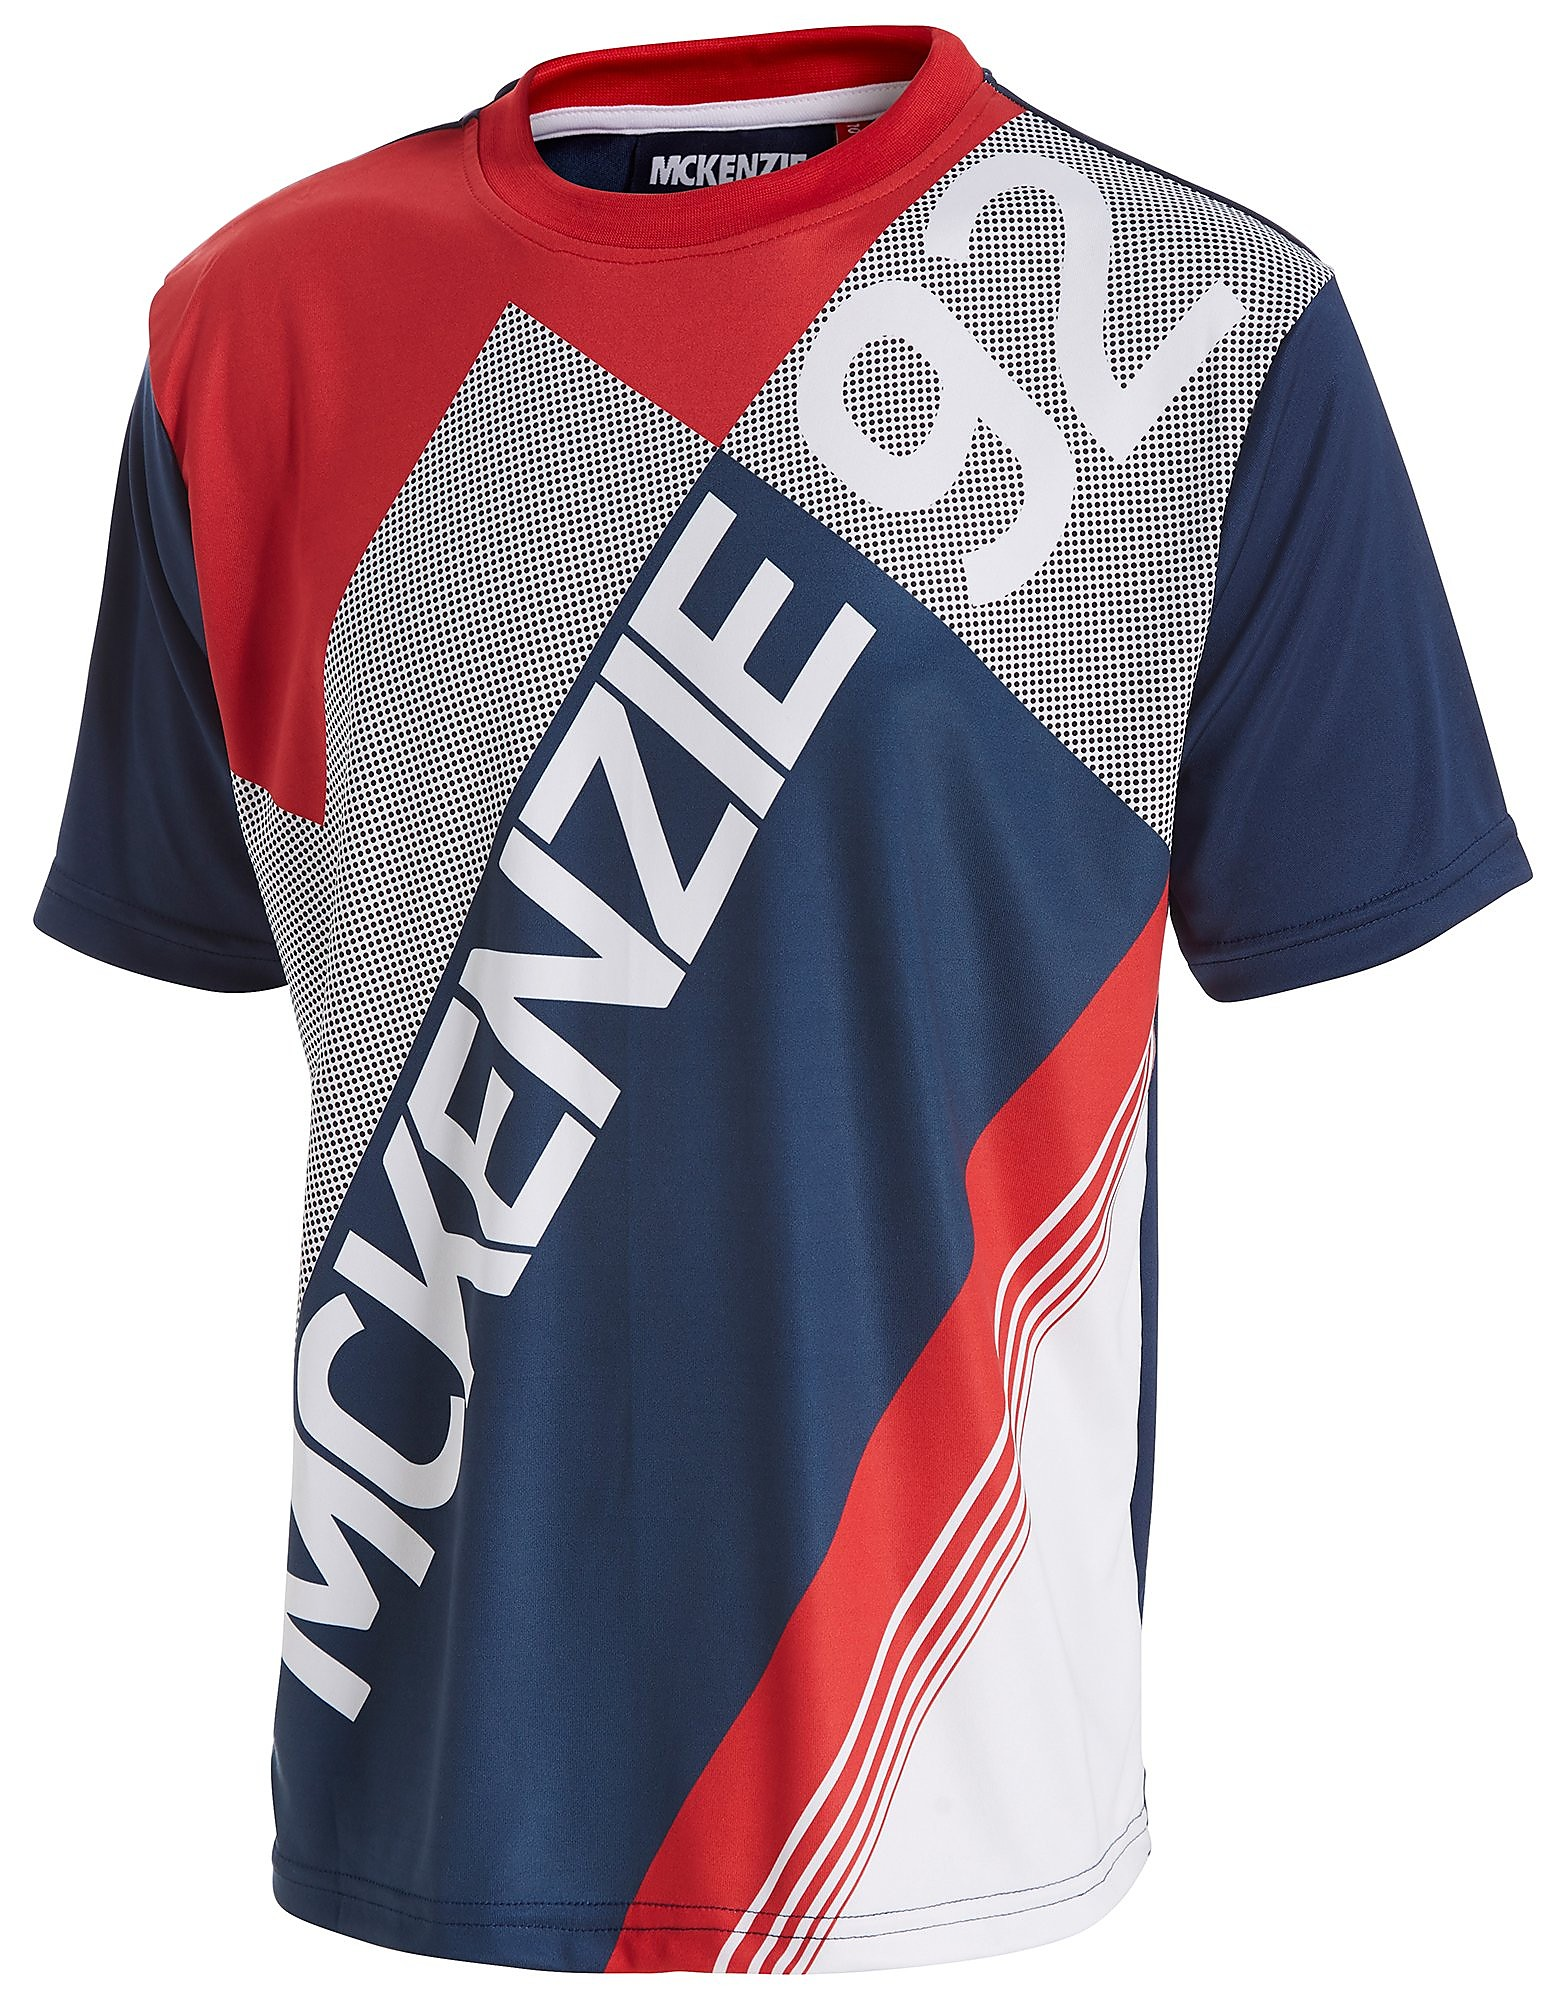 McKenzie camiseta Harrold júnior